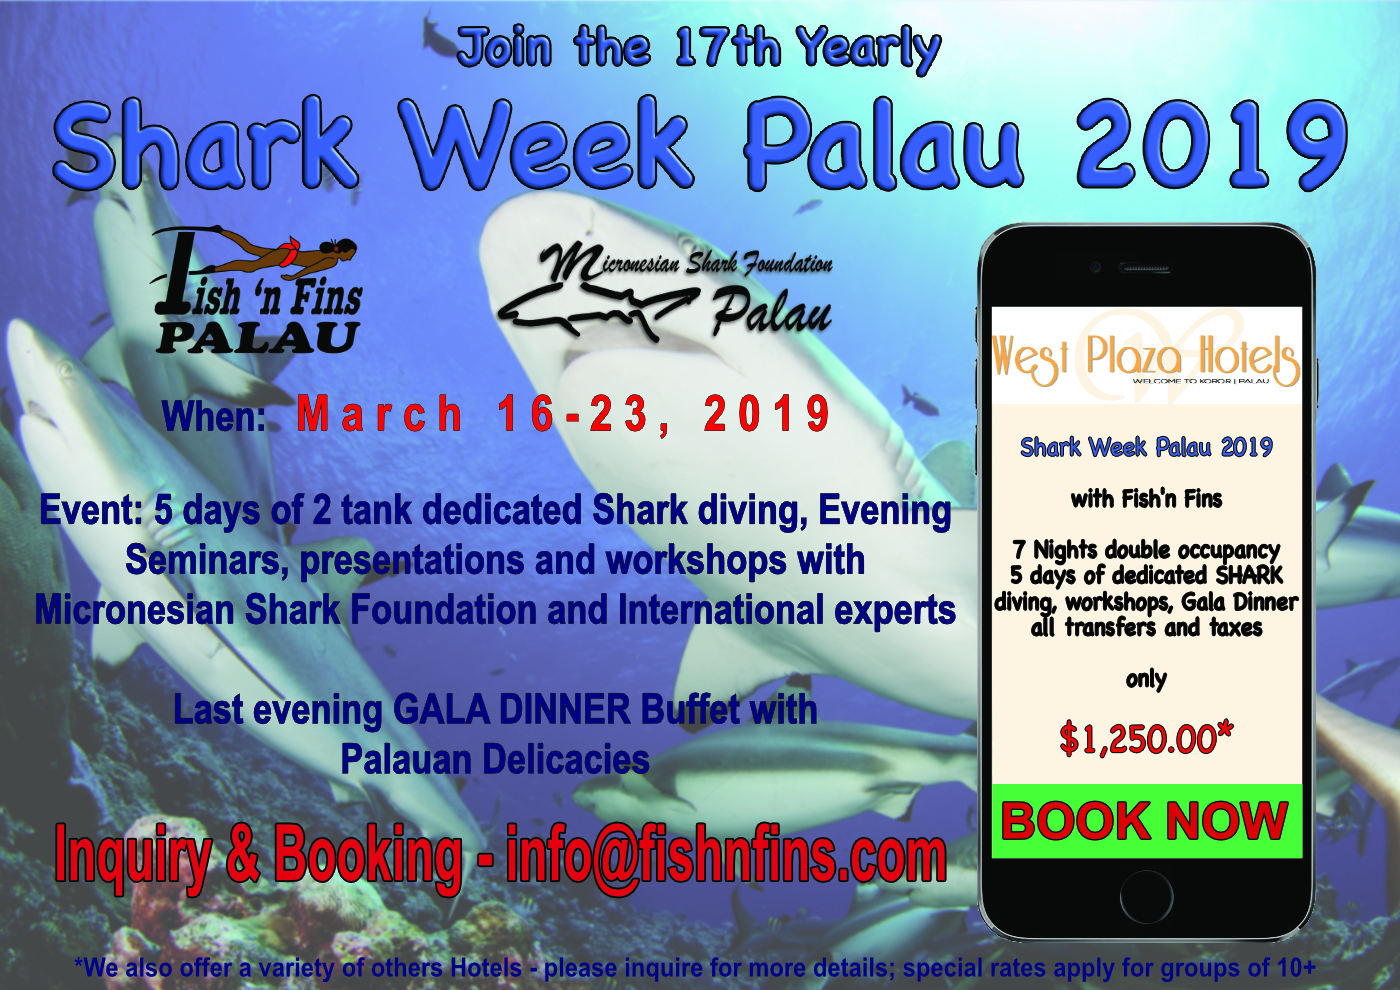 Shark Week Palau 2019